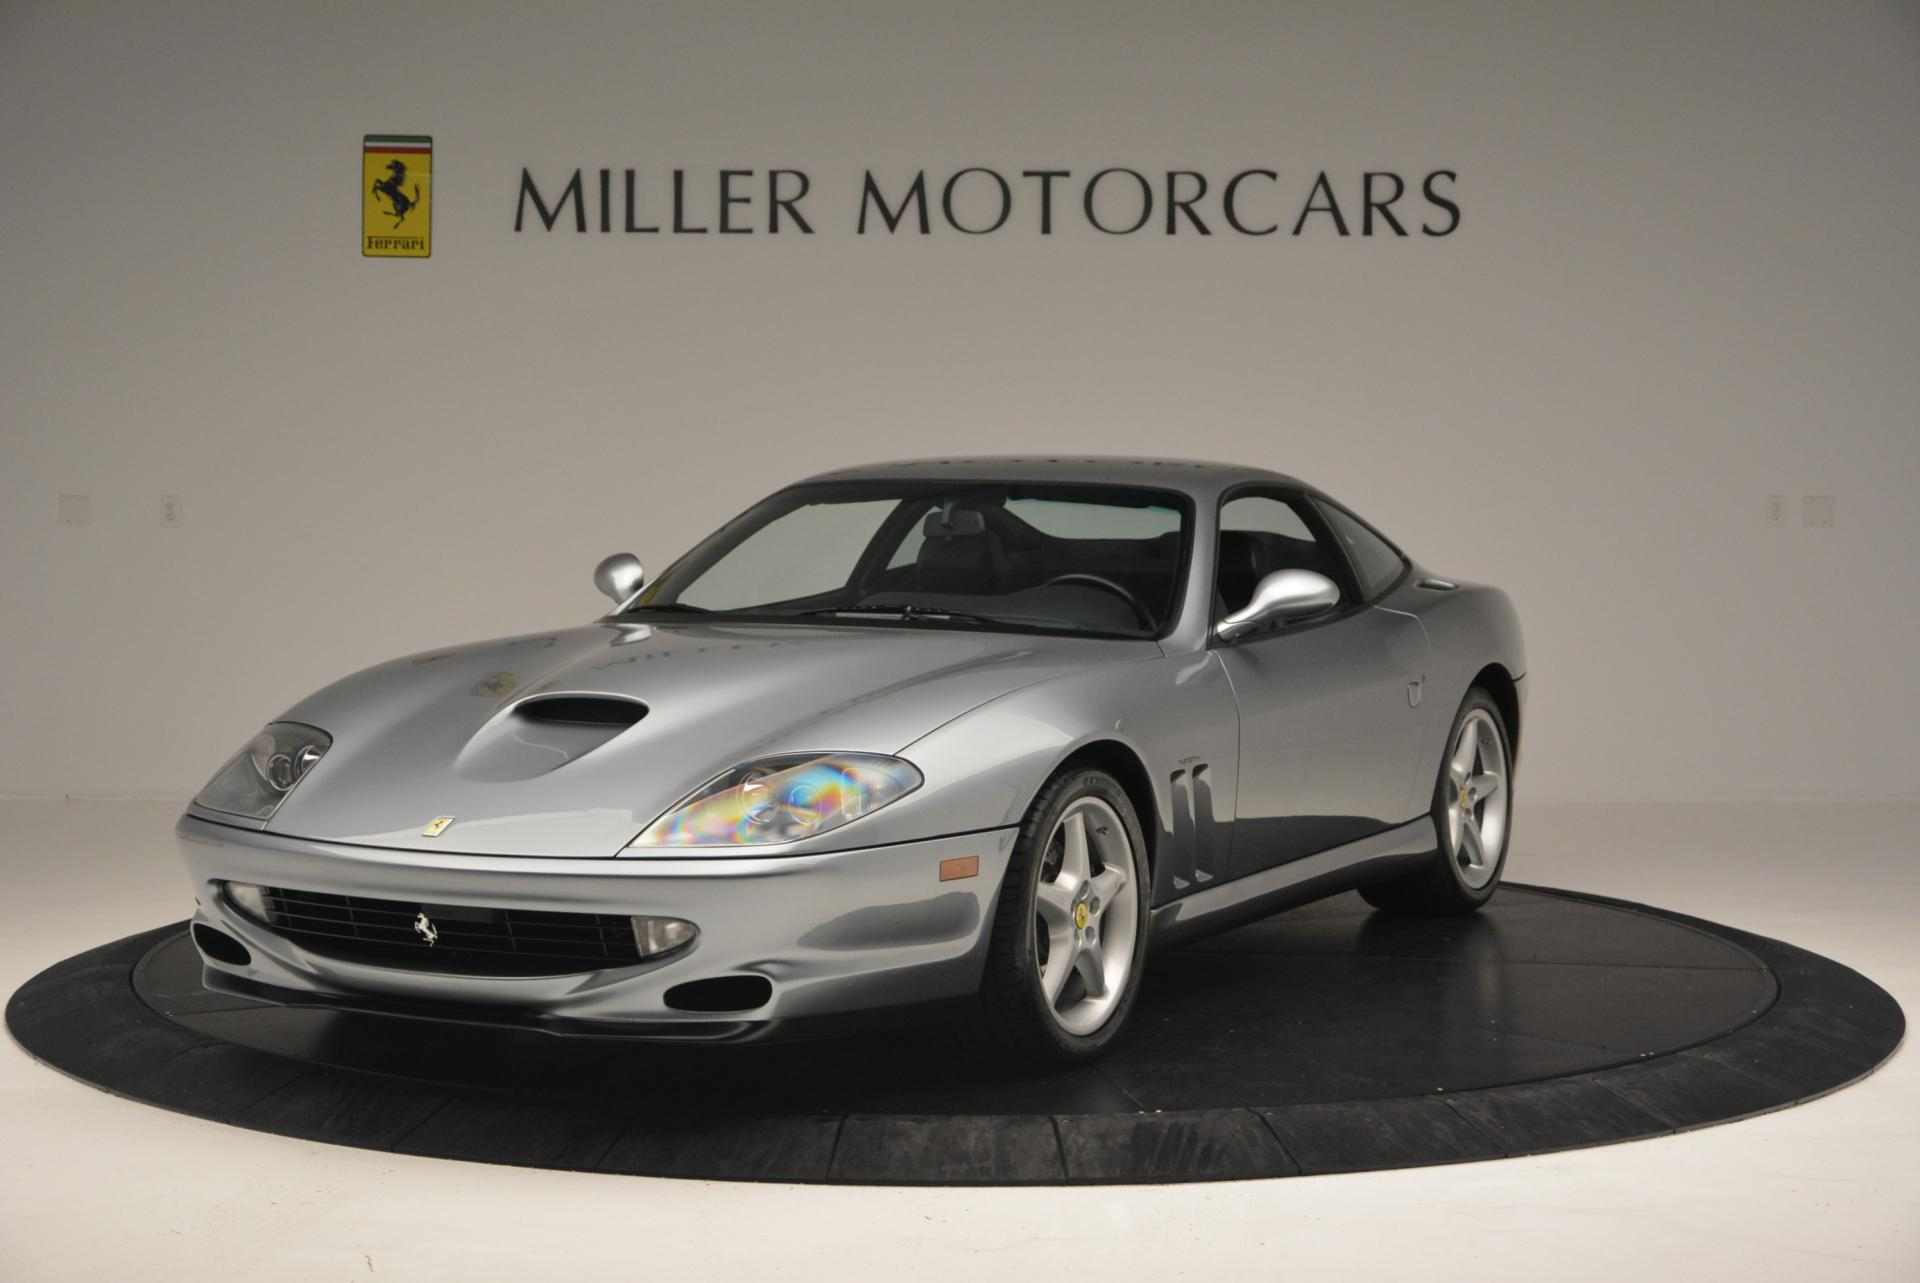 Used 1997 Ferrari 550 Maranello for sale Sold at Maserati of Greenwich in Greenwich CT 06830 1